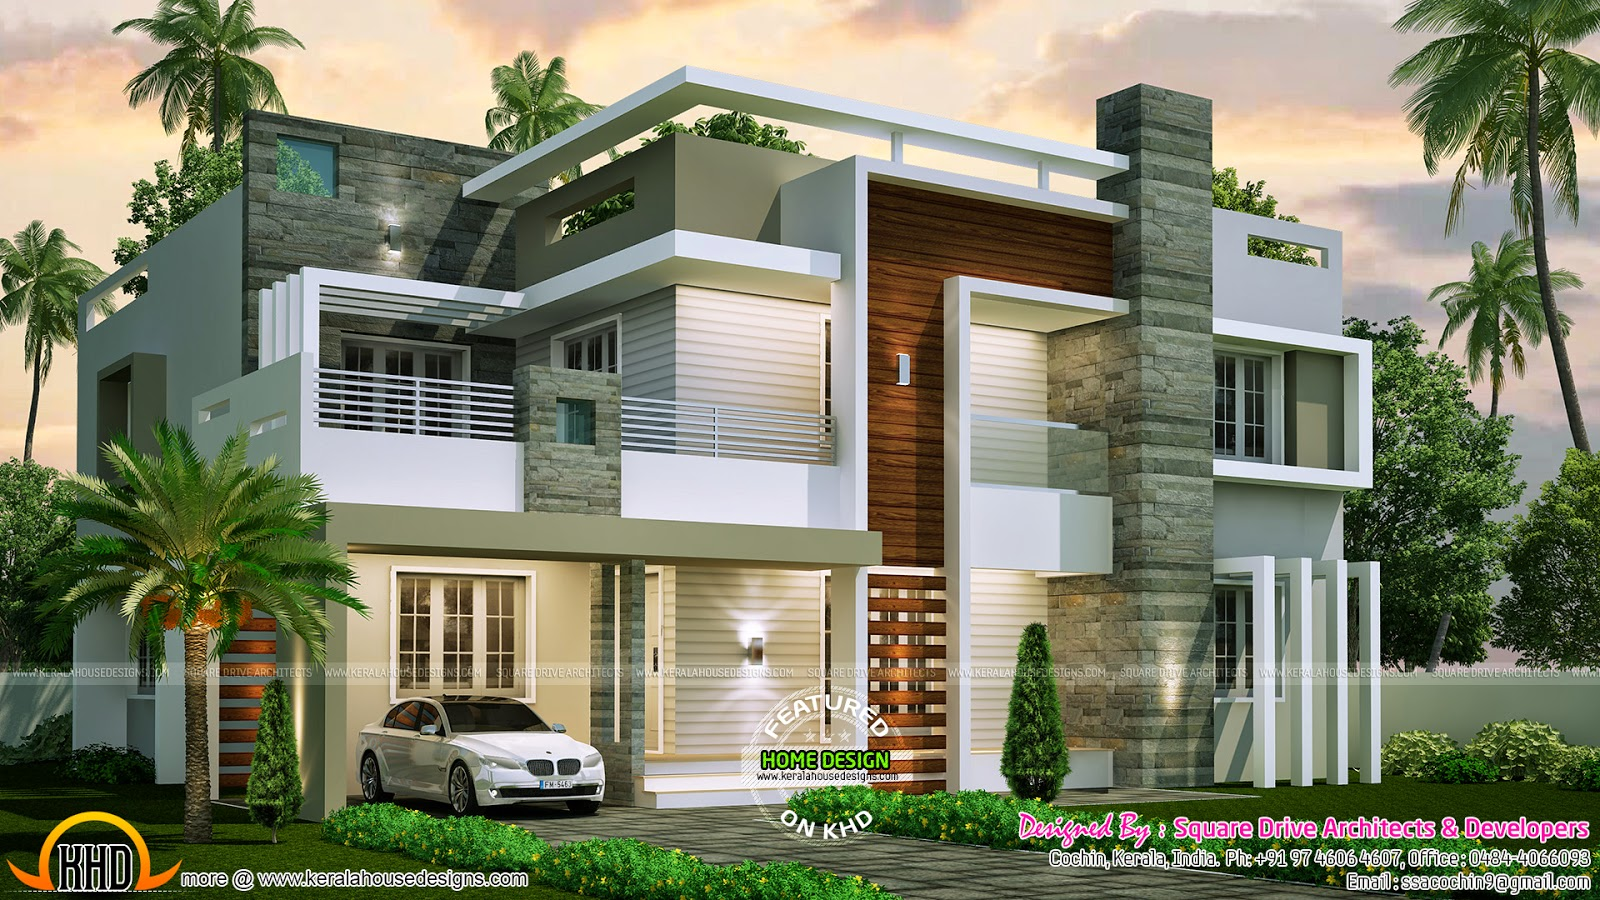 4 bedroom contemporary home design kerala home design for Mordern house